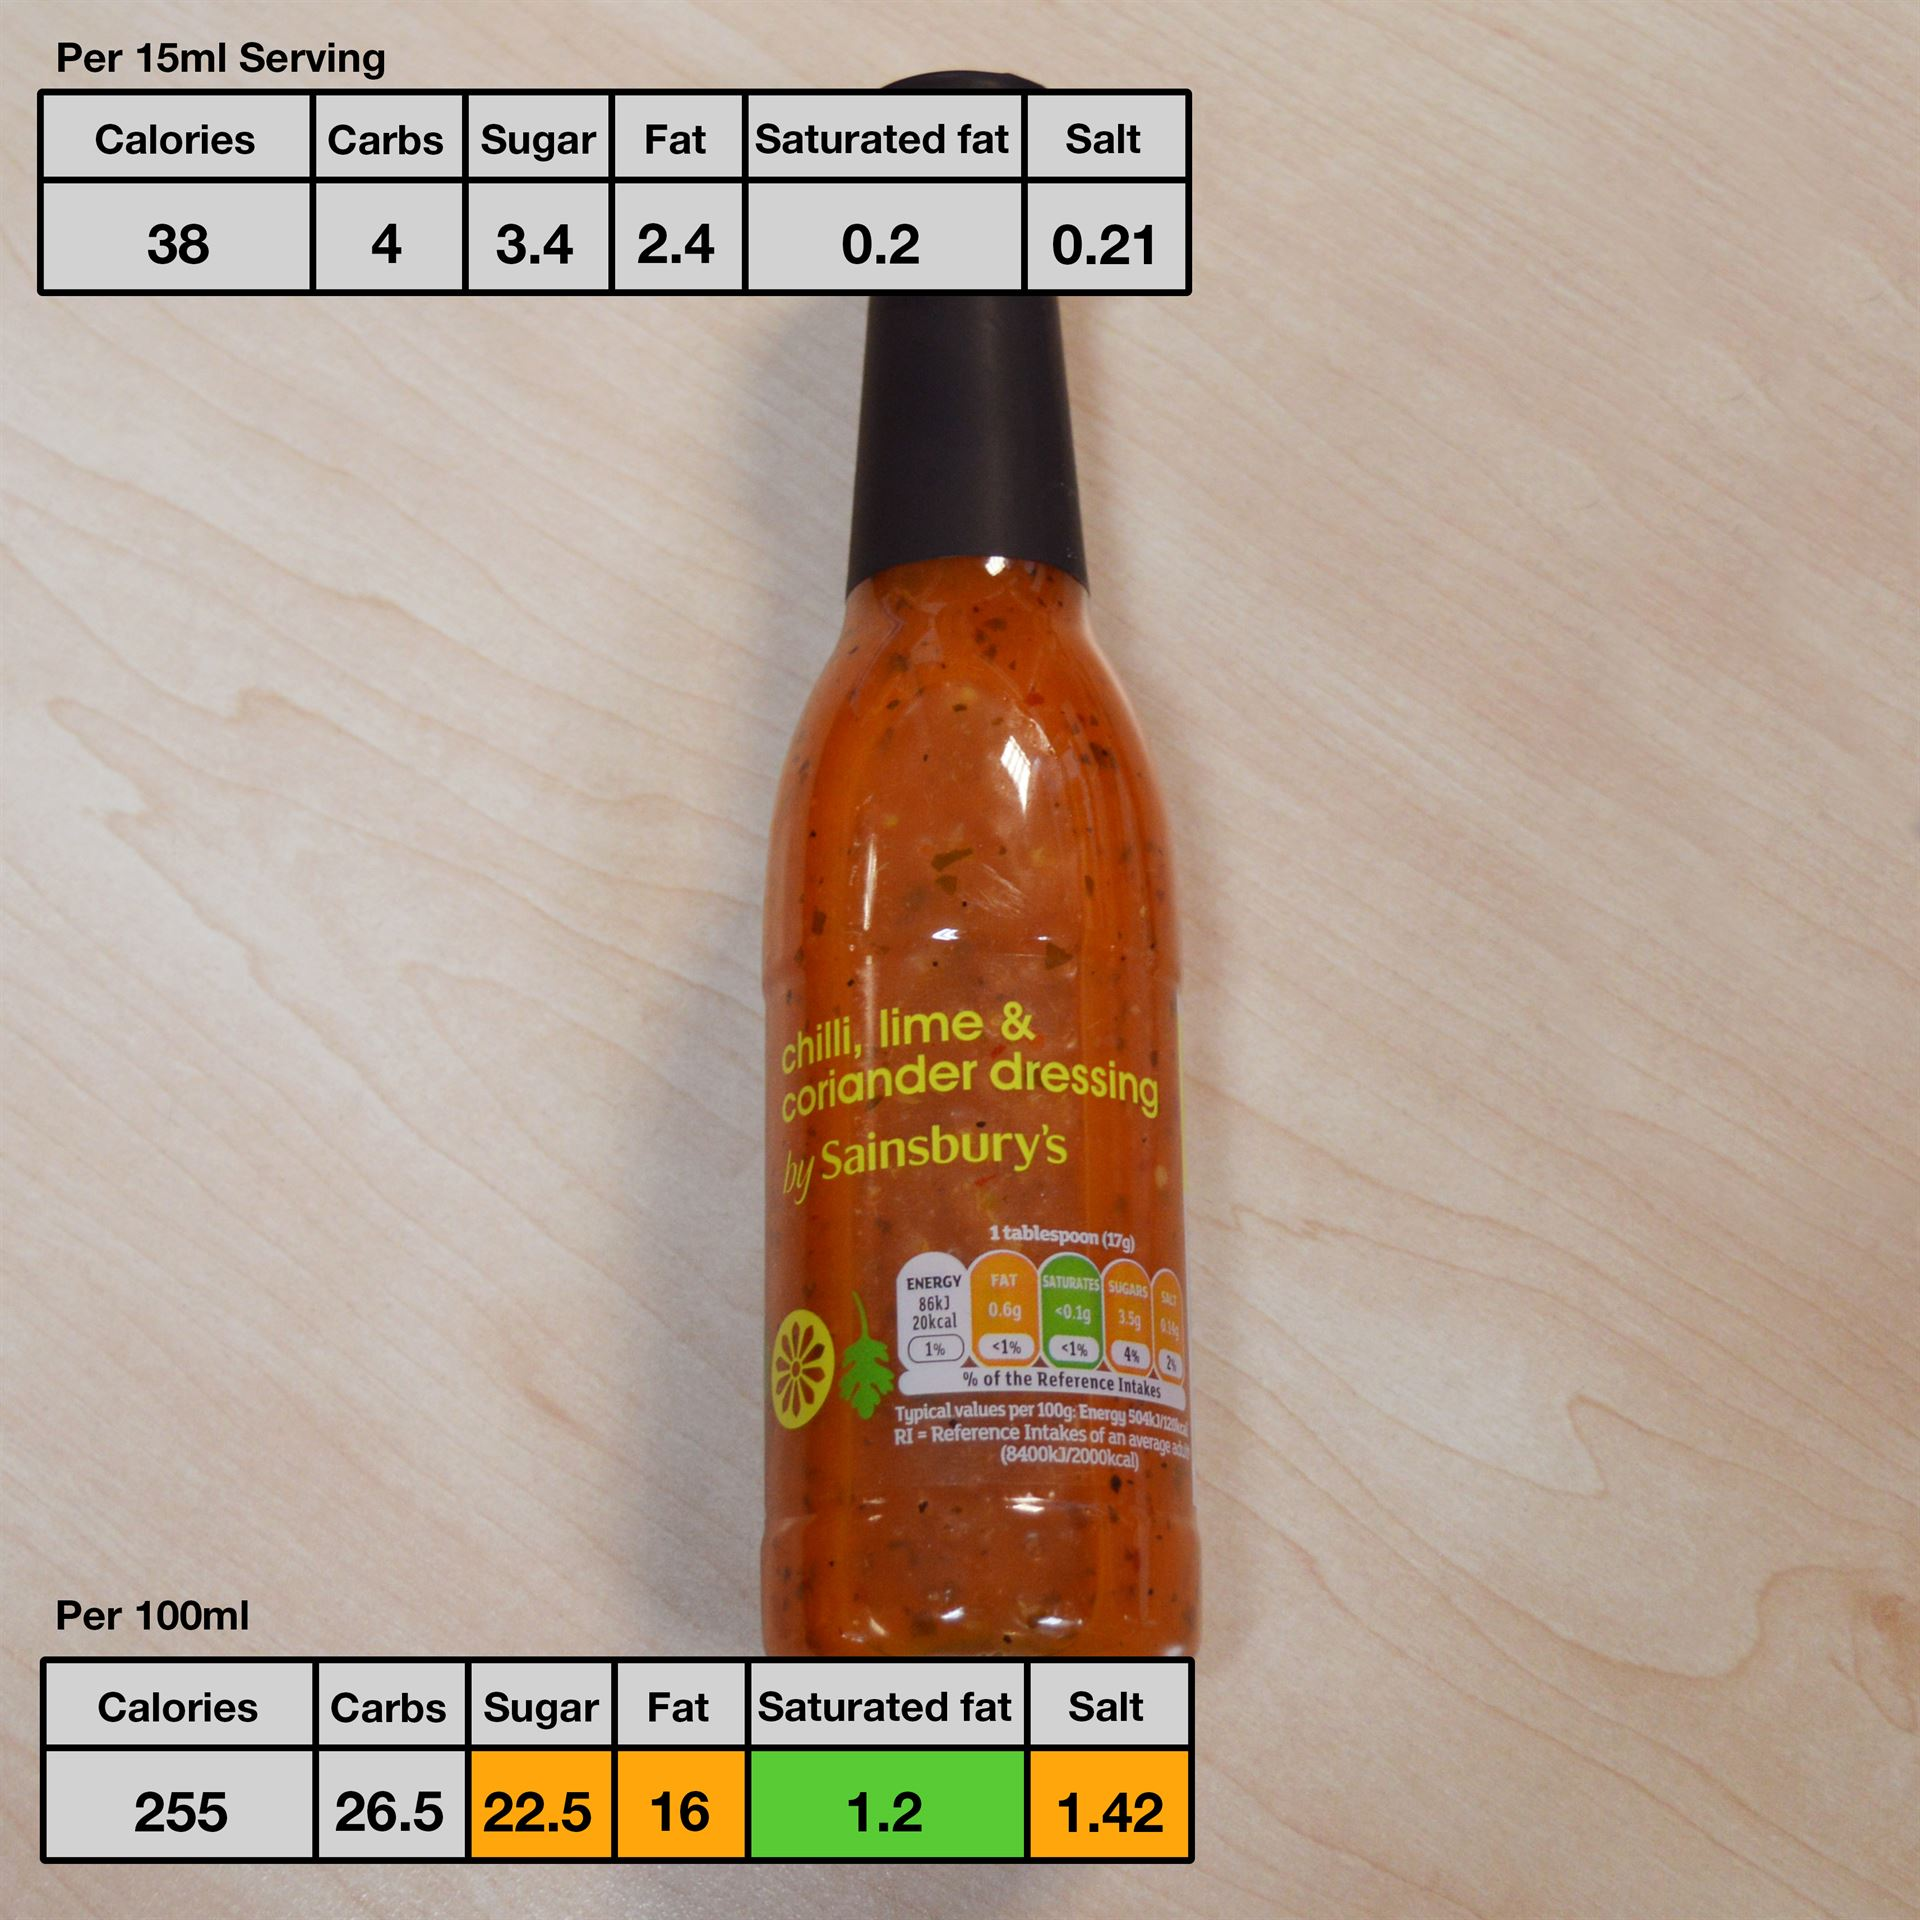 Sainsbury%e2%80%99s%20sweet%20chilli%20and%20coriander%20dressing2.jpg